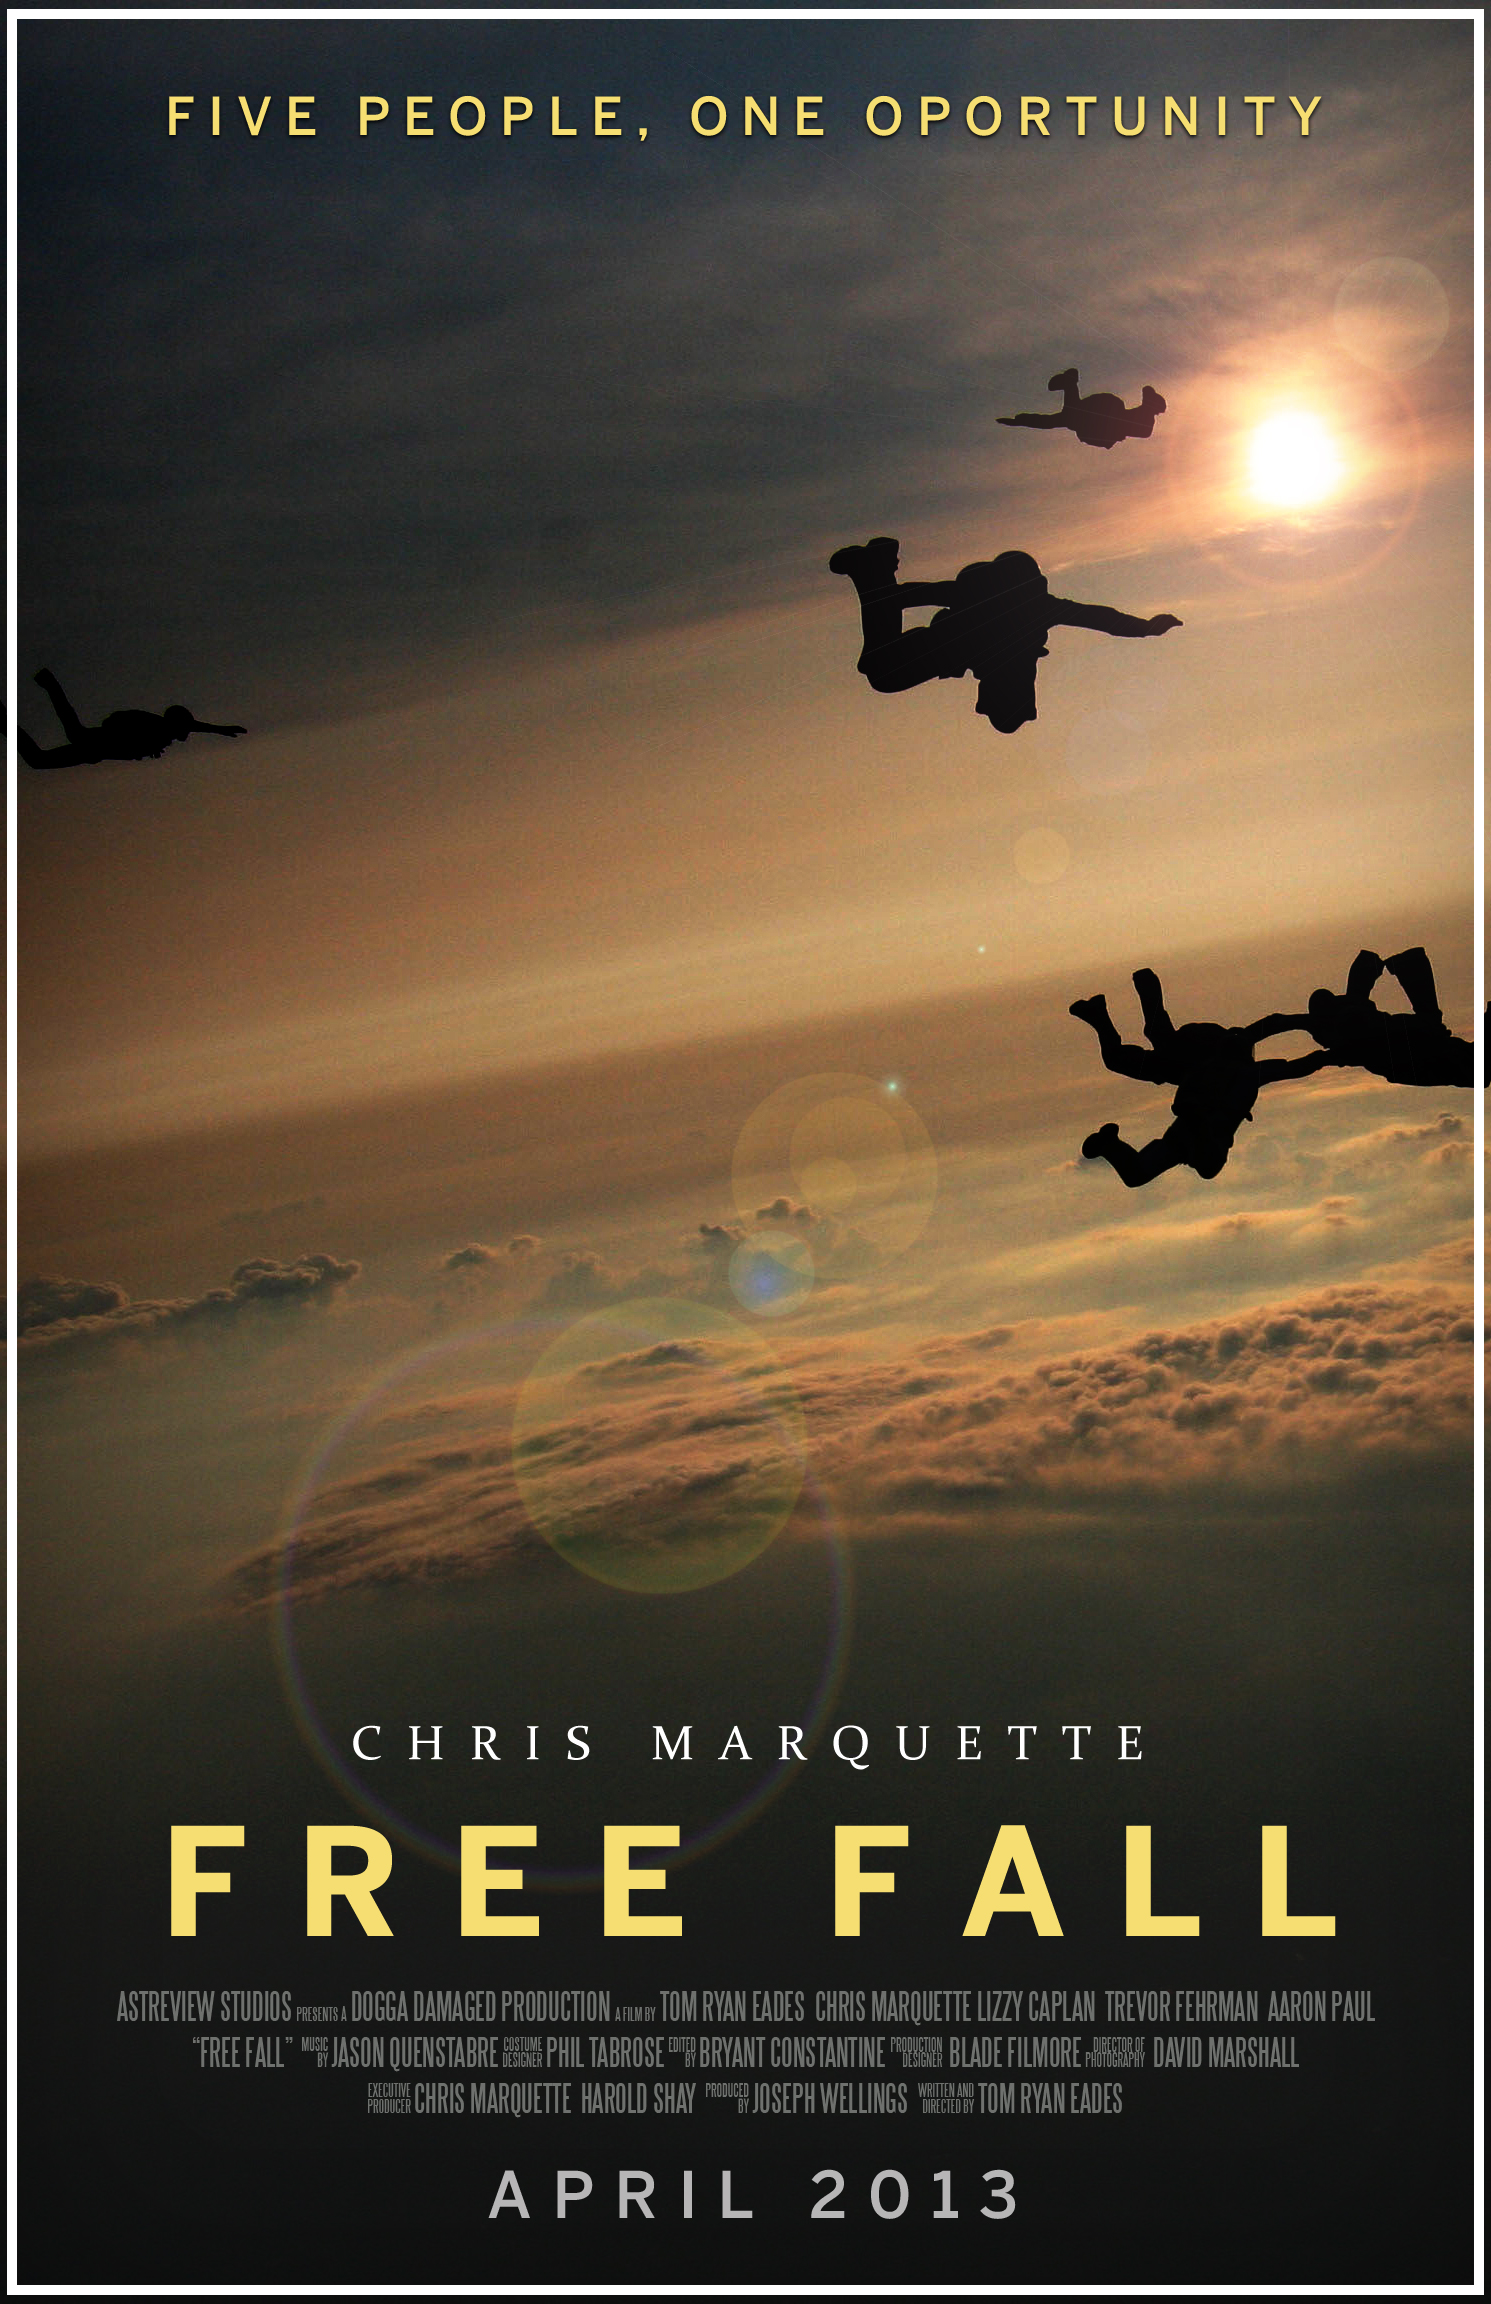 free fall original movie poster 11 in x 17 in by papatom